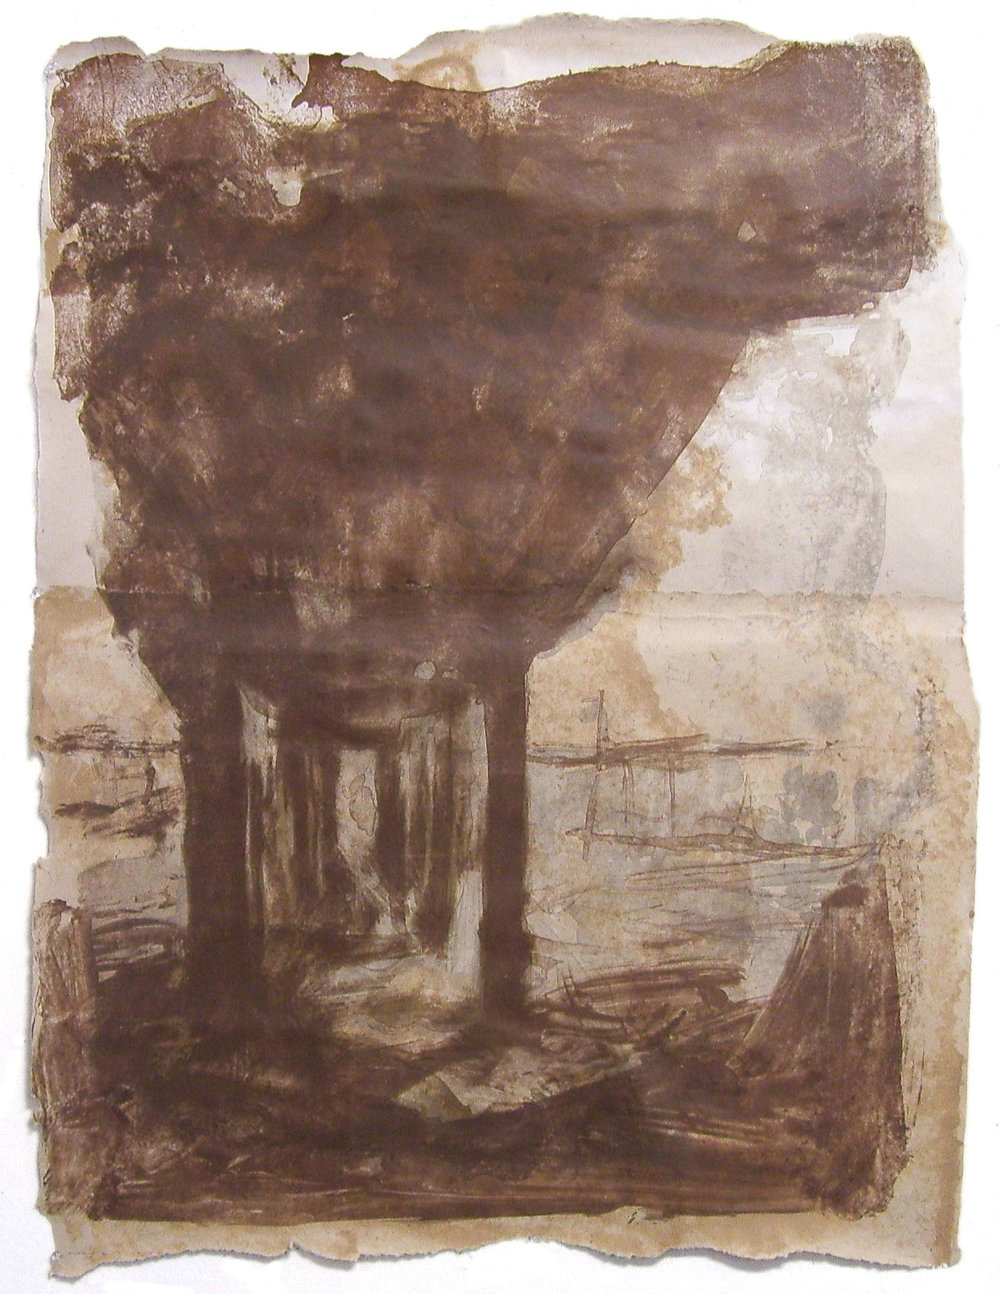 "Port Allen, Louisiana, 2010, Color Lithograph, Pulp Painting, Handmade Paper, 32"" x 40"""